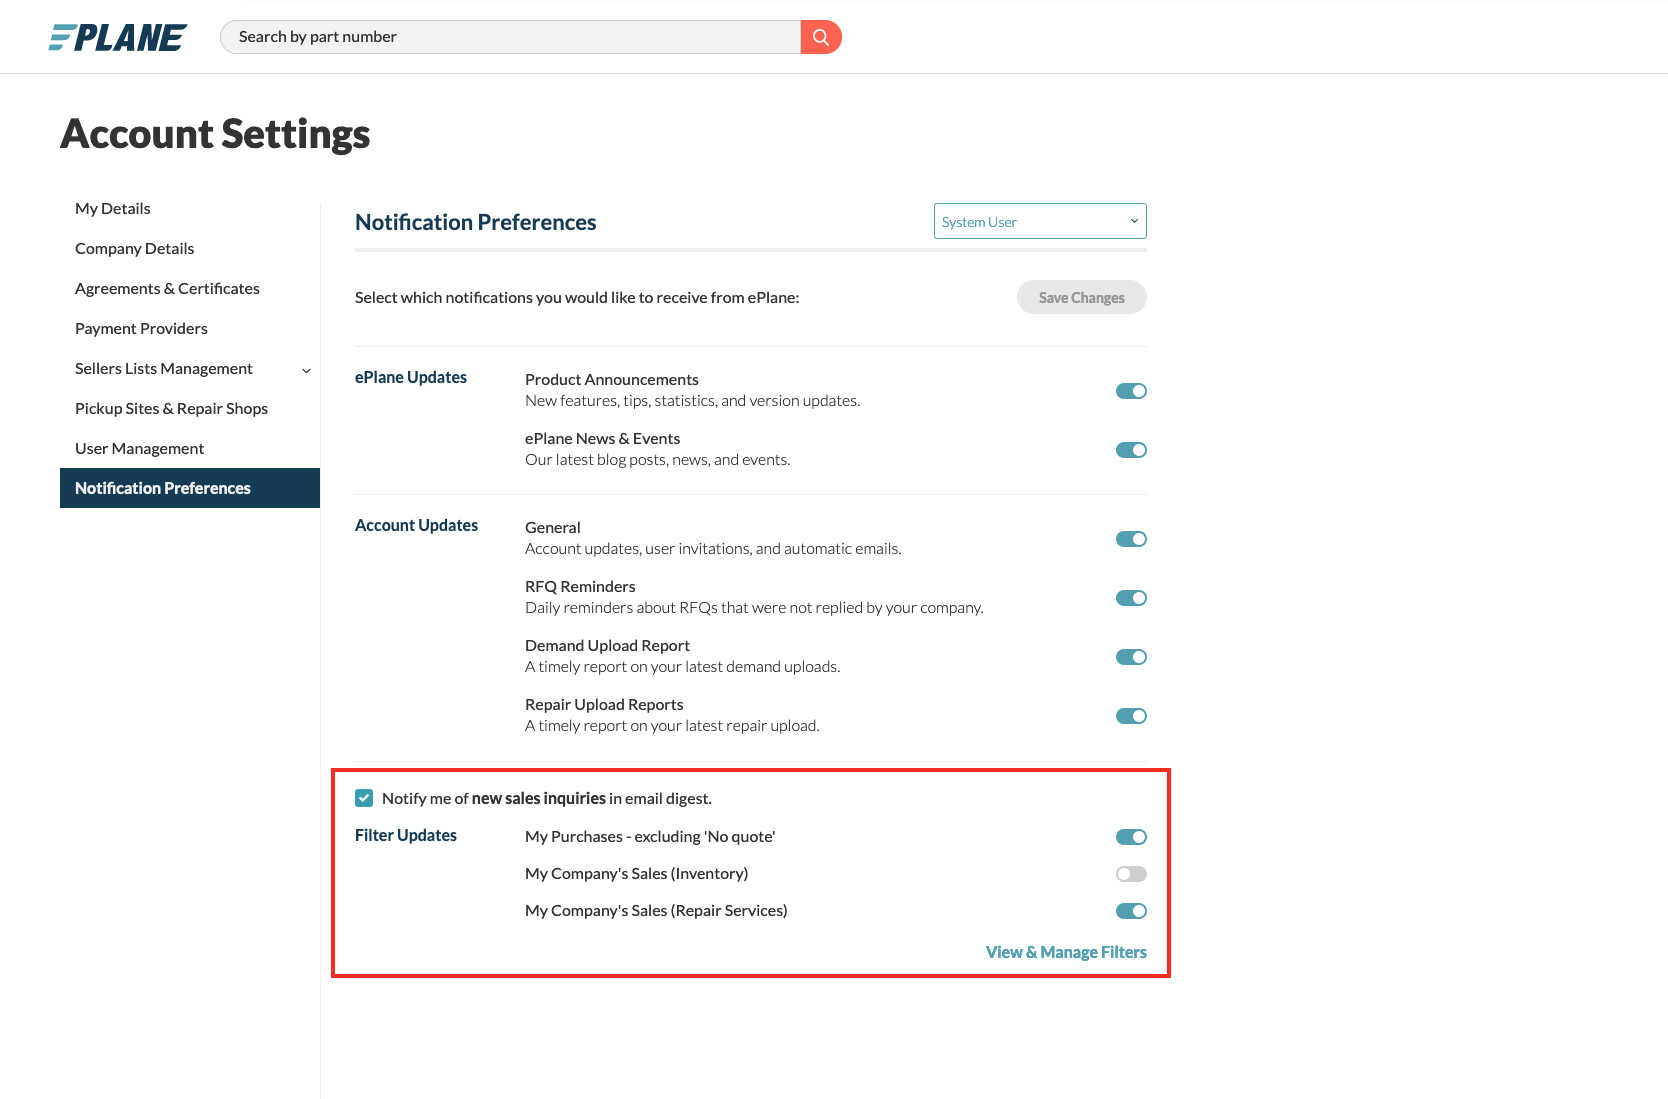 Within ePlane's settings, you can turn off email RFQ notifications if you would like to prevent duplicate notifications.